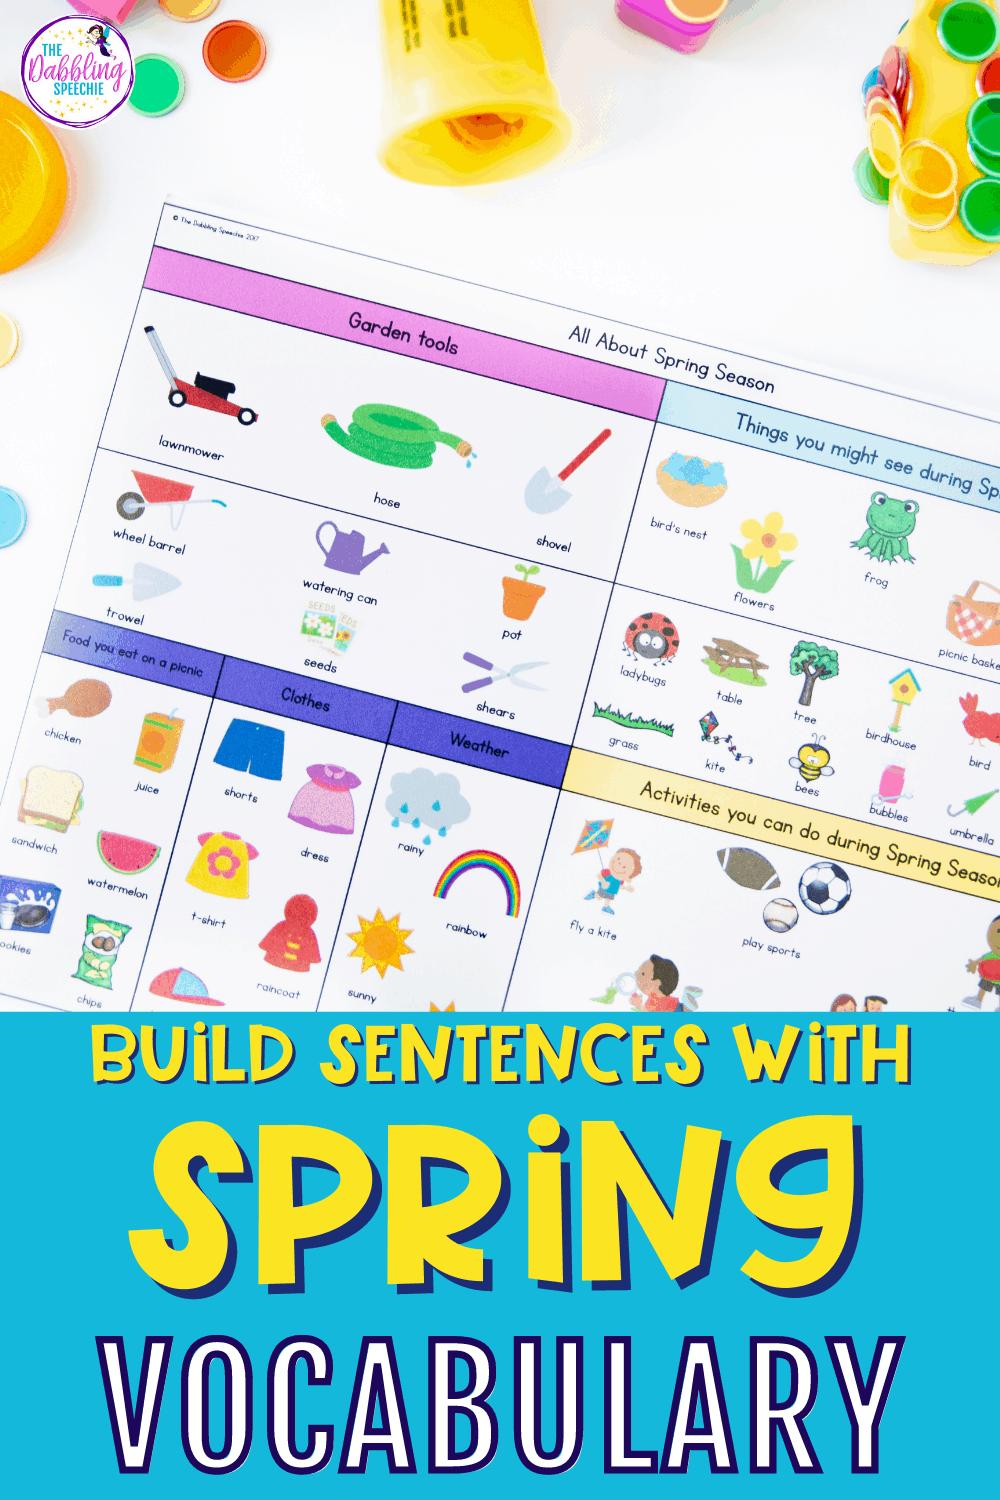 Use spring vocabulary in grammatically correct sentences to work on using verbs in functional sentences.